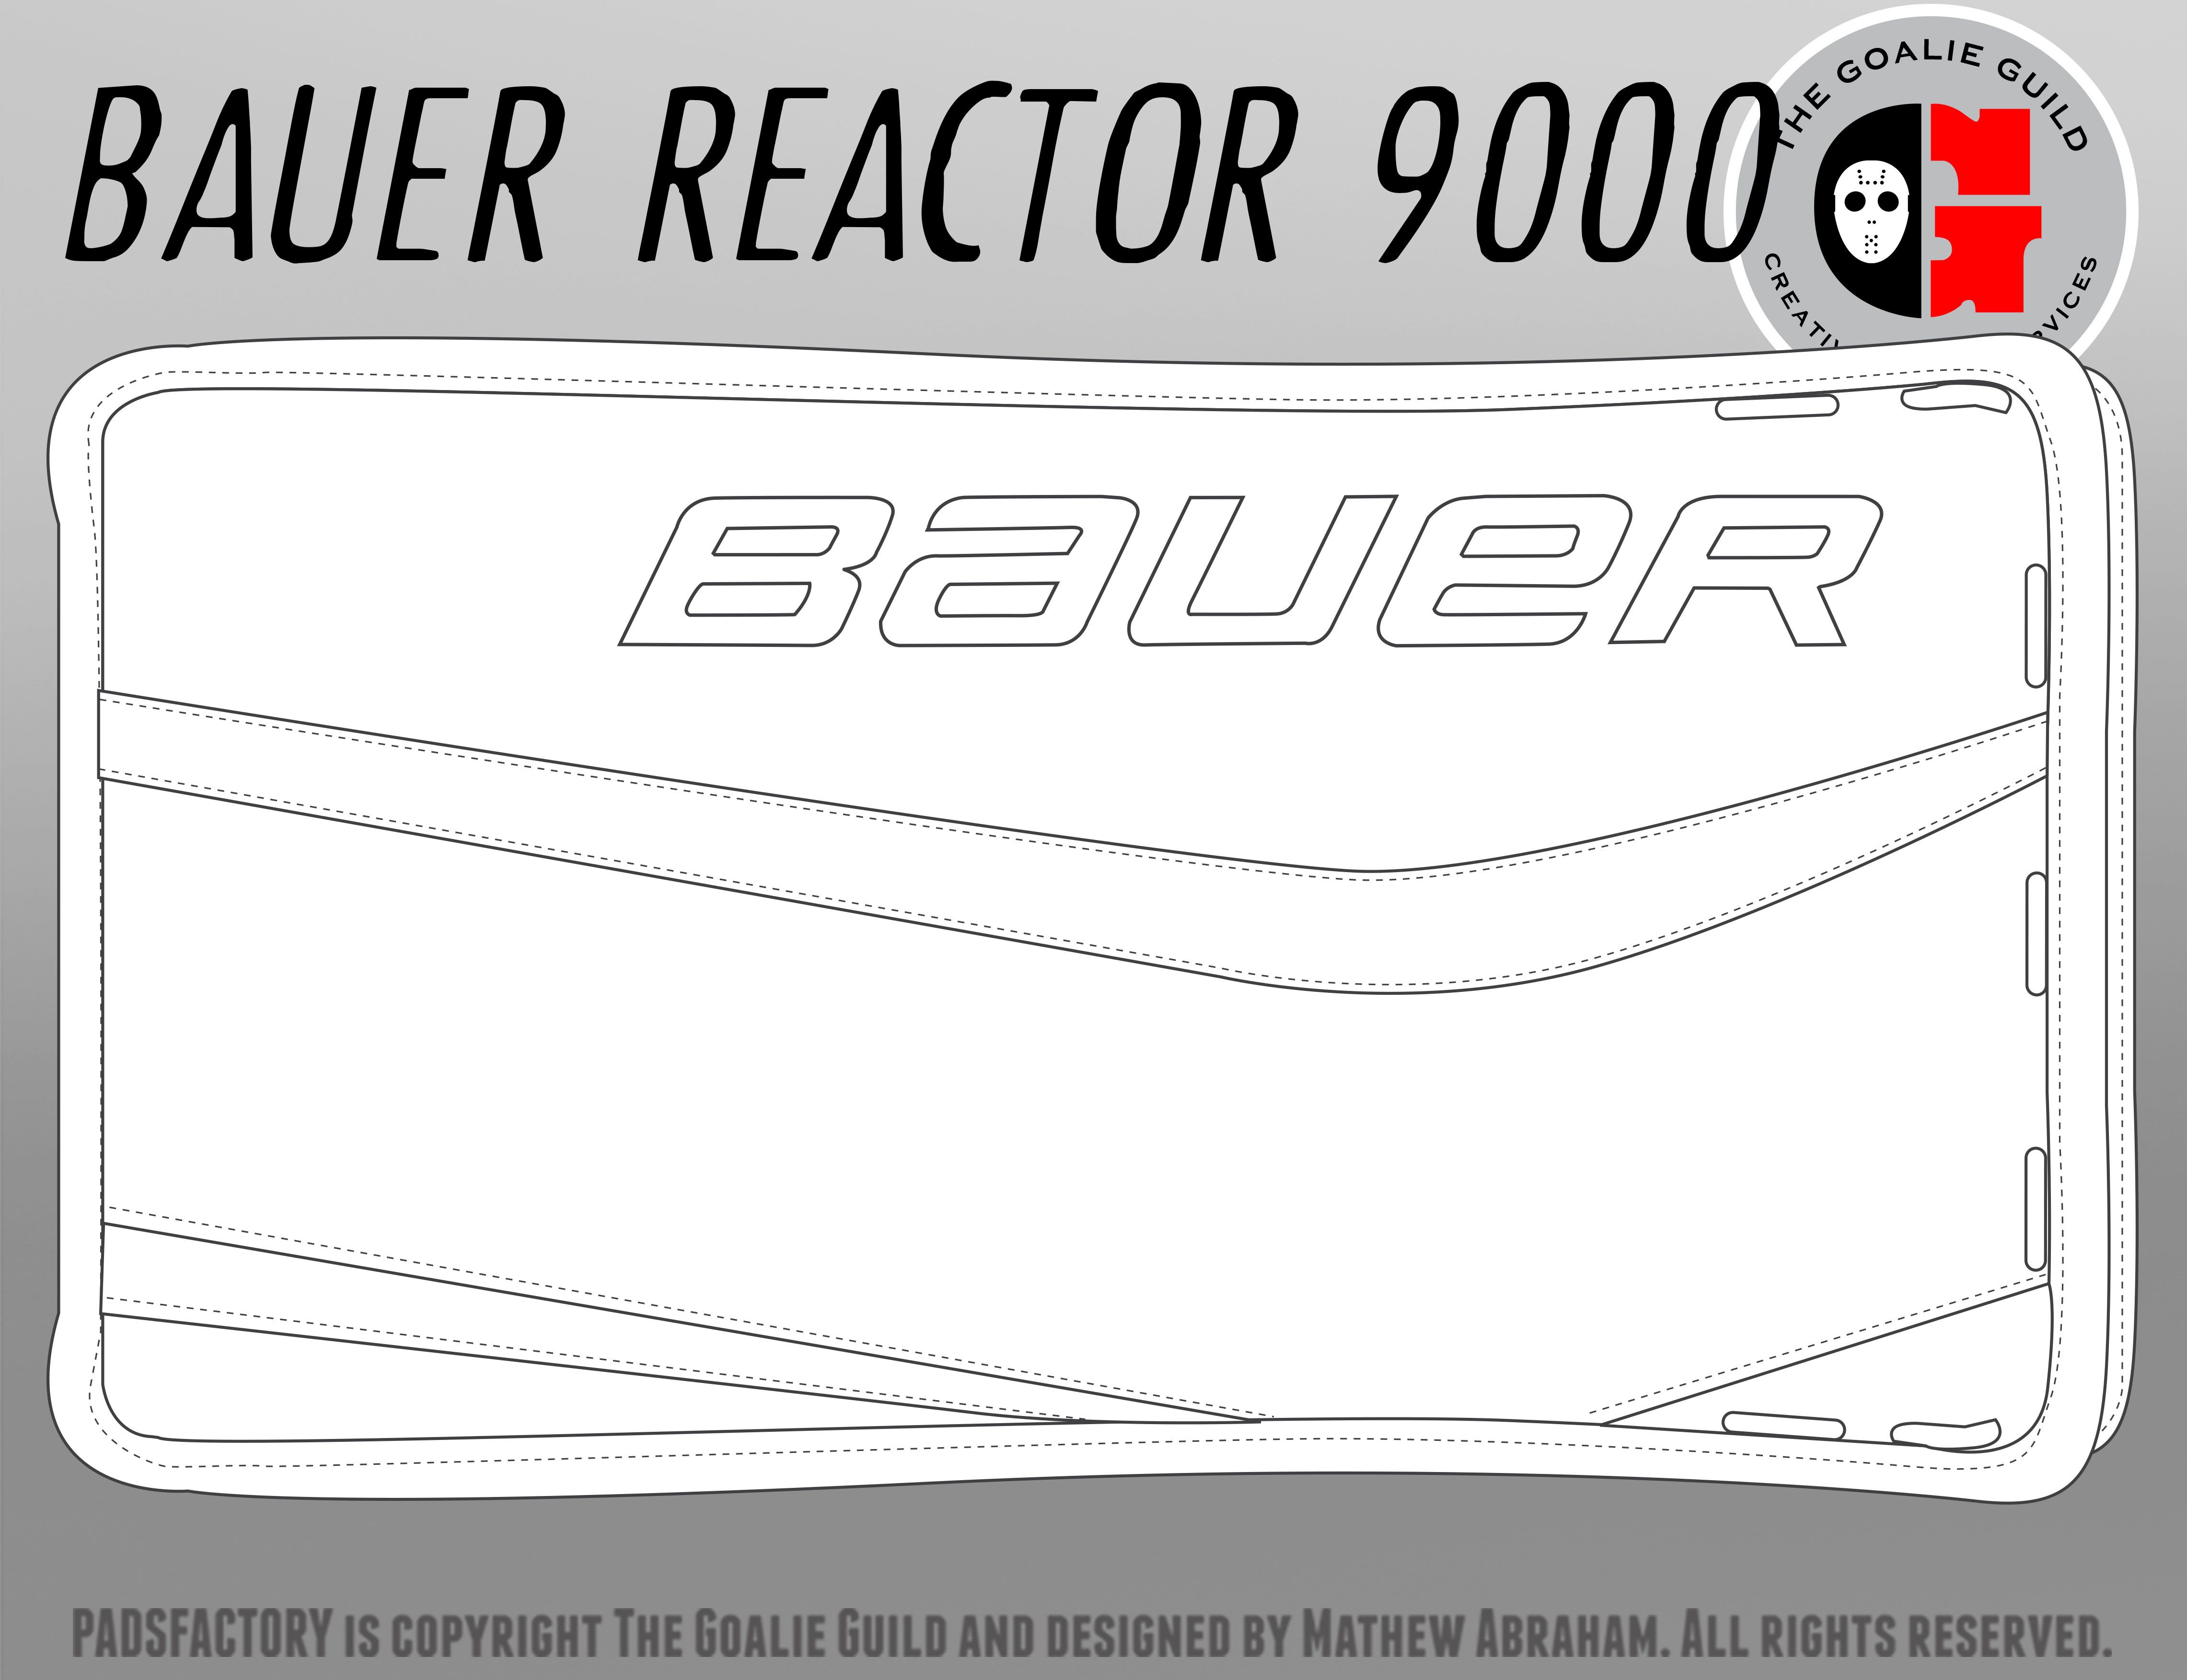 Bauer reactor the goalie guild for Bauer goalie mask template